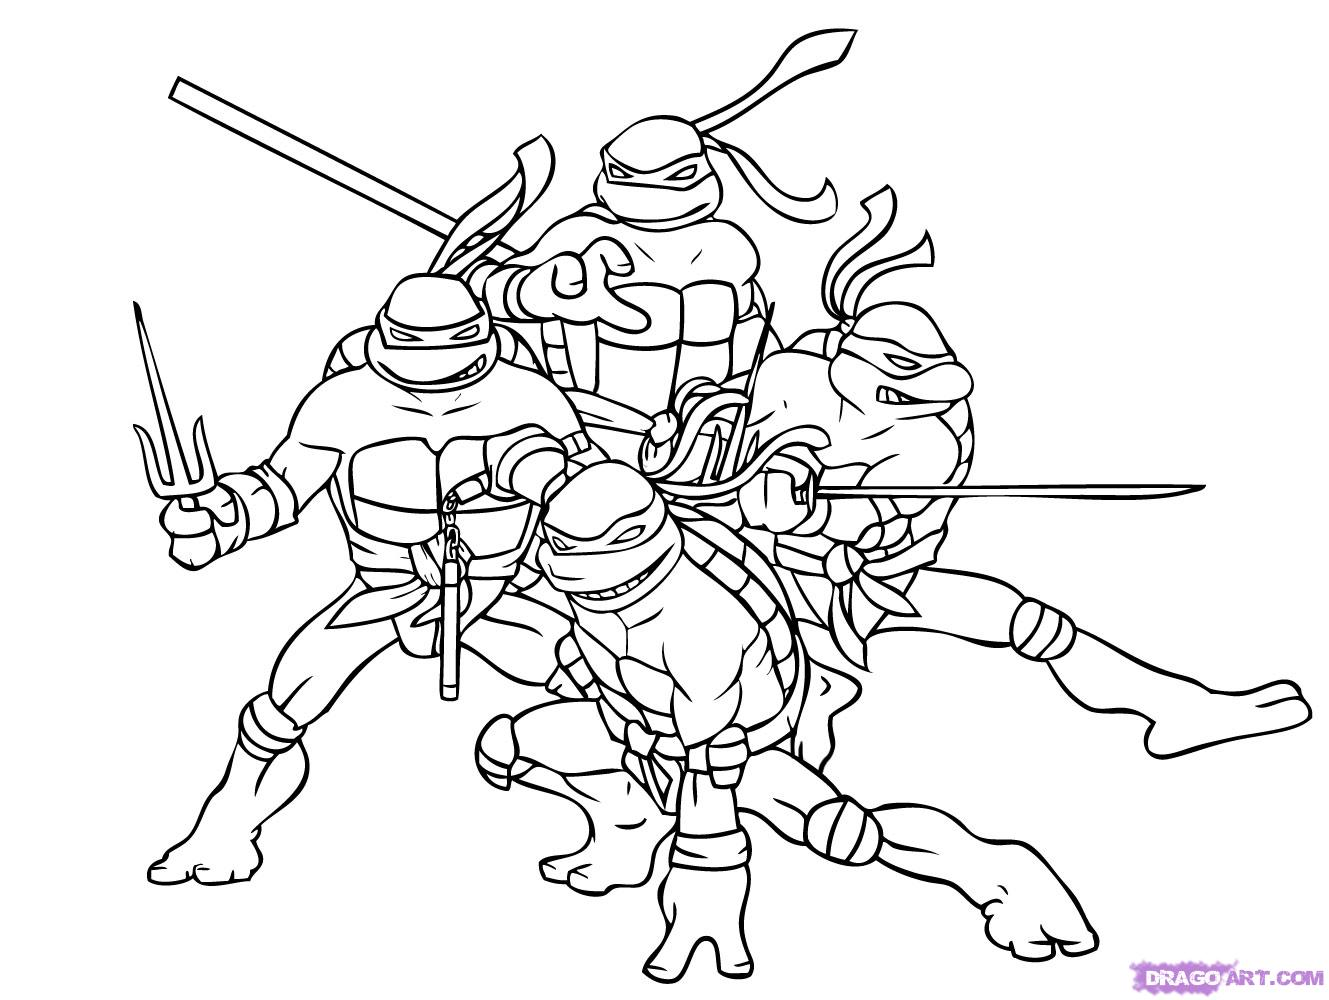 ninja turtle coloring pages craftoholic teenage mutant ninja turtles coloring pages ninja coloring turtle pages